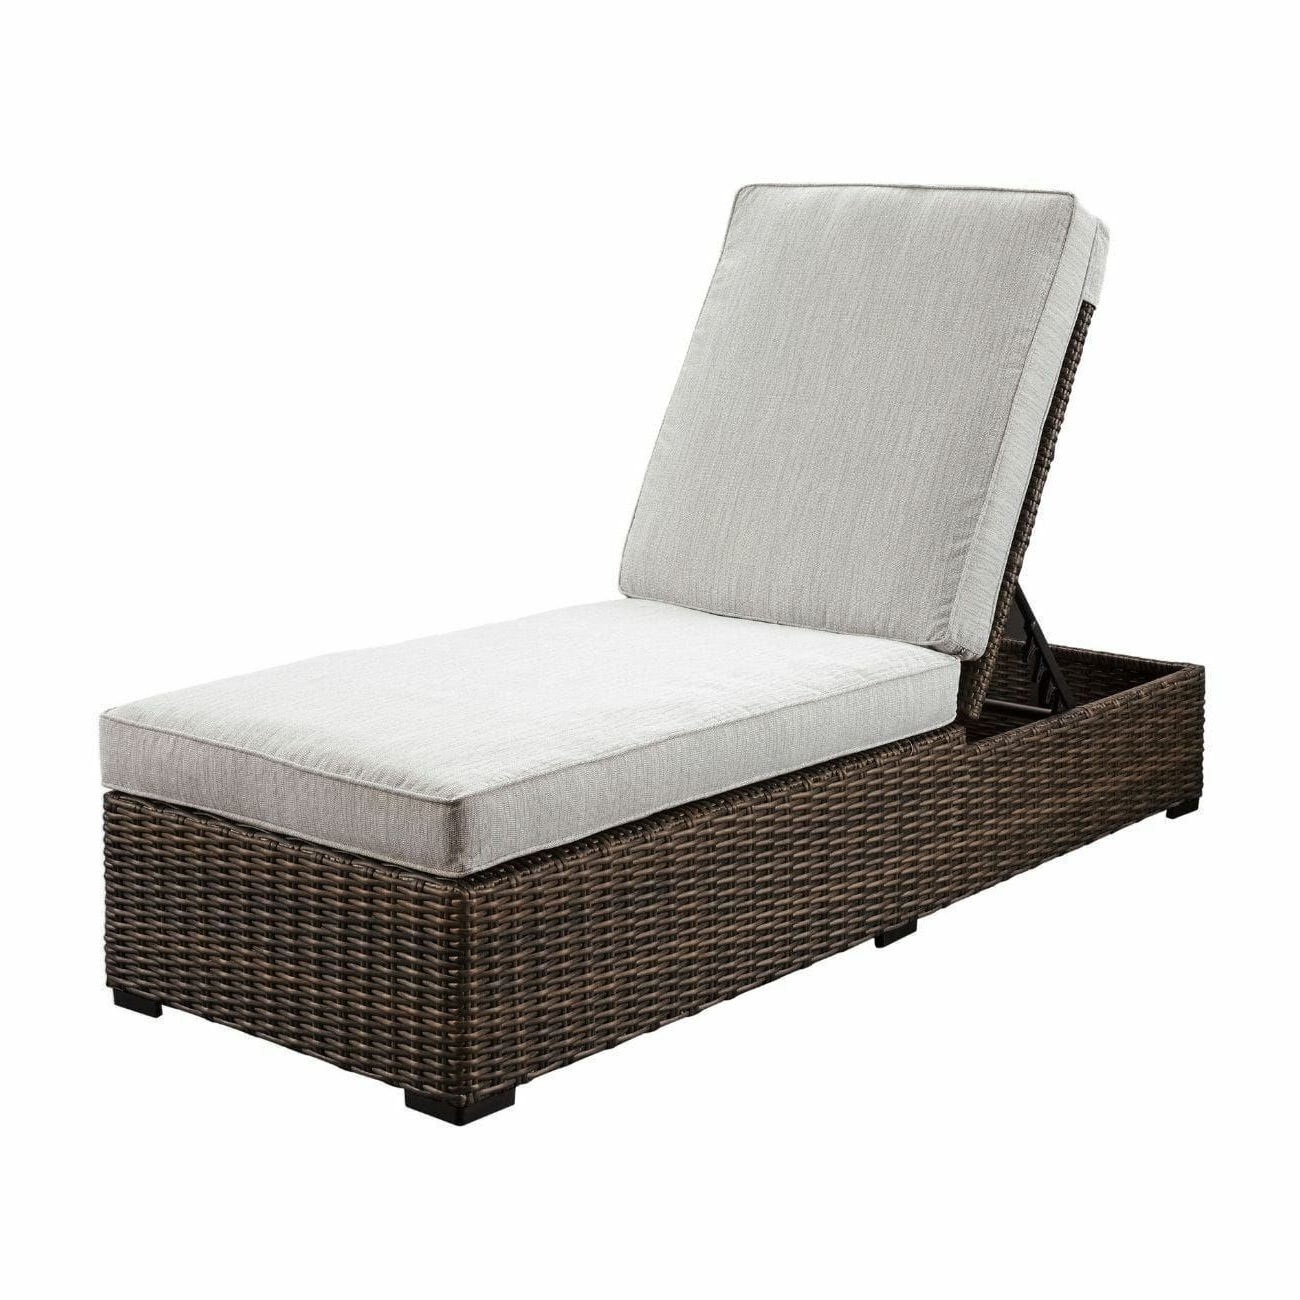 Most Popular Wicker Chaise Back Adjustable Patio Lounge Chairs With Wheels Regarding Alta Grande Outdoor Chaise Lounge (View 16 of 25)